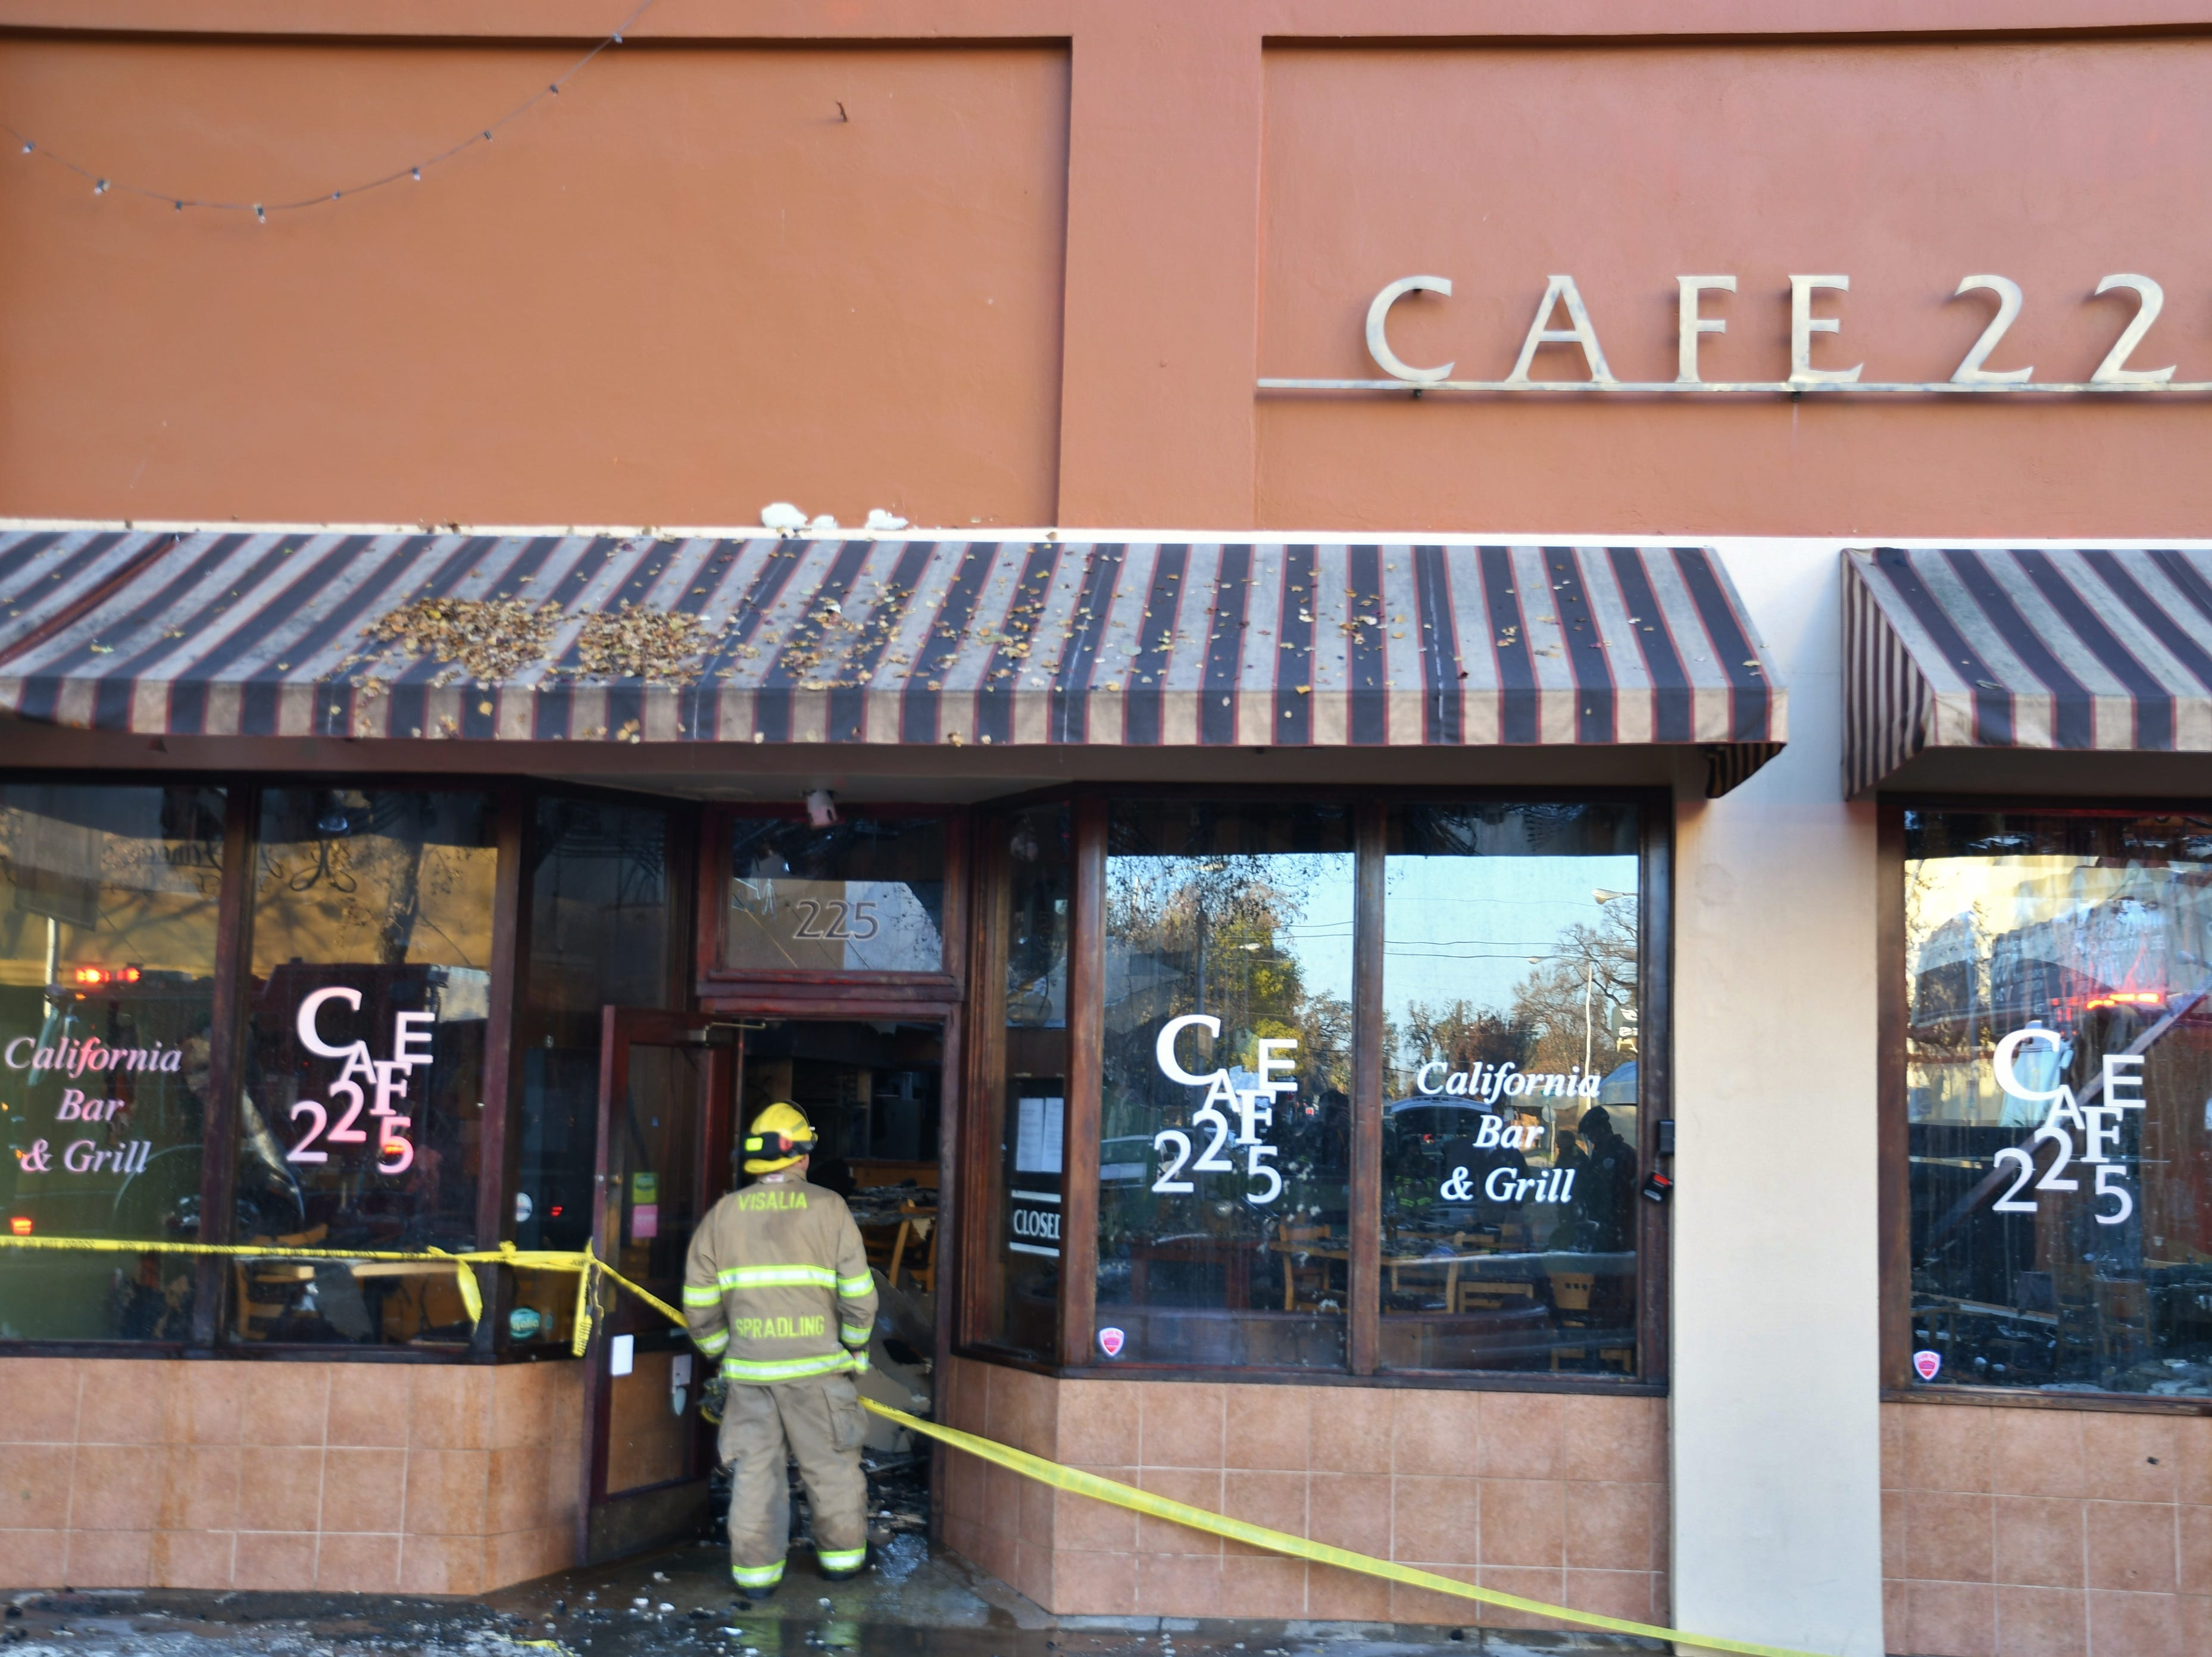 Four downtown businesses were damaged in the three-alarm fire, including Cafe 225 and Mama K's Diner. Neighboring businesses Exotica and Acapulco Jewelers and Little Italy were also damaged.